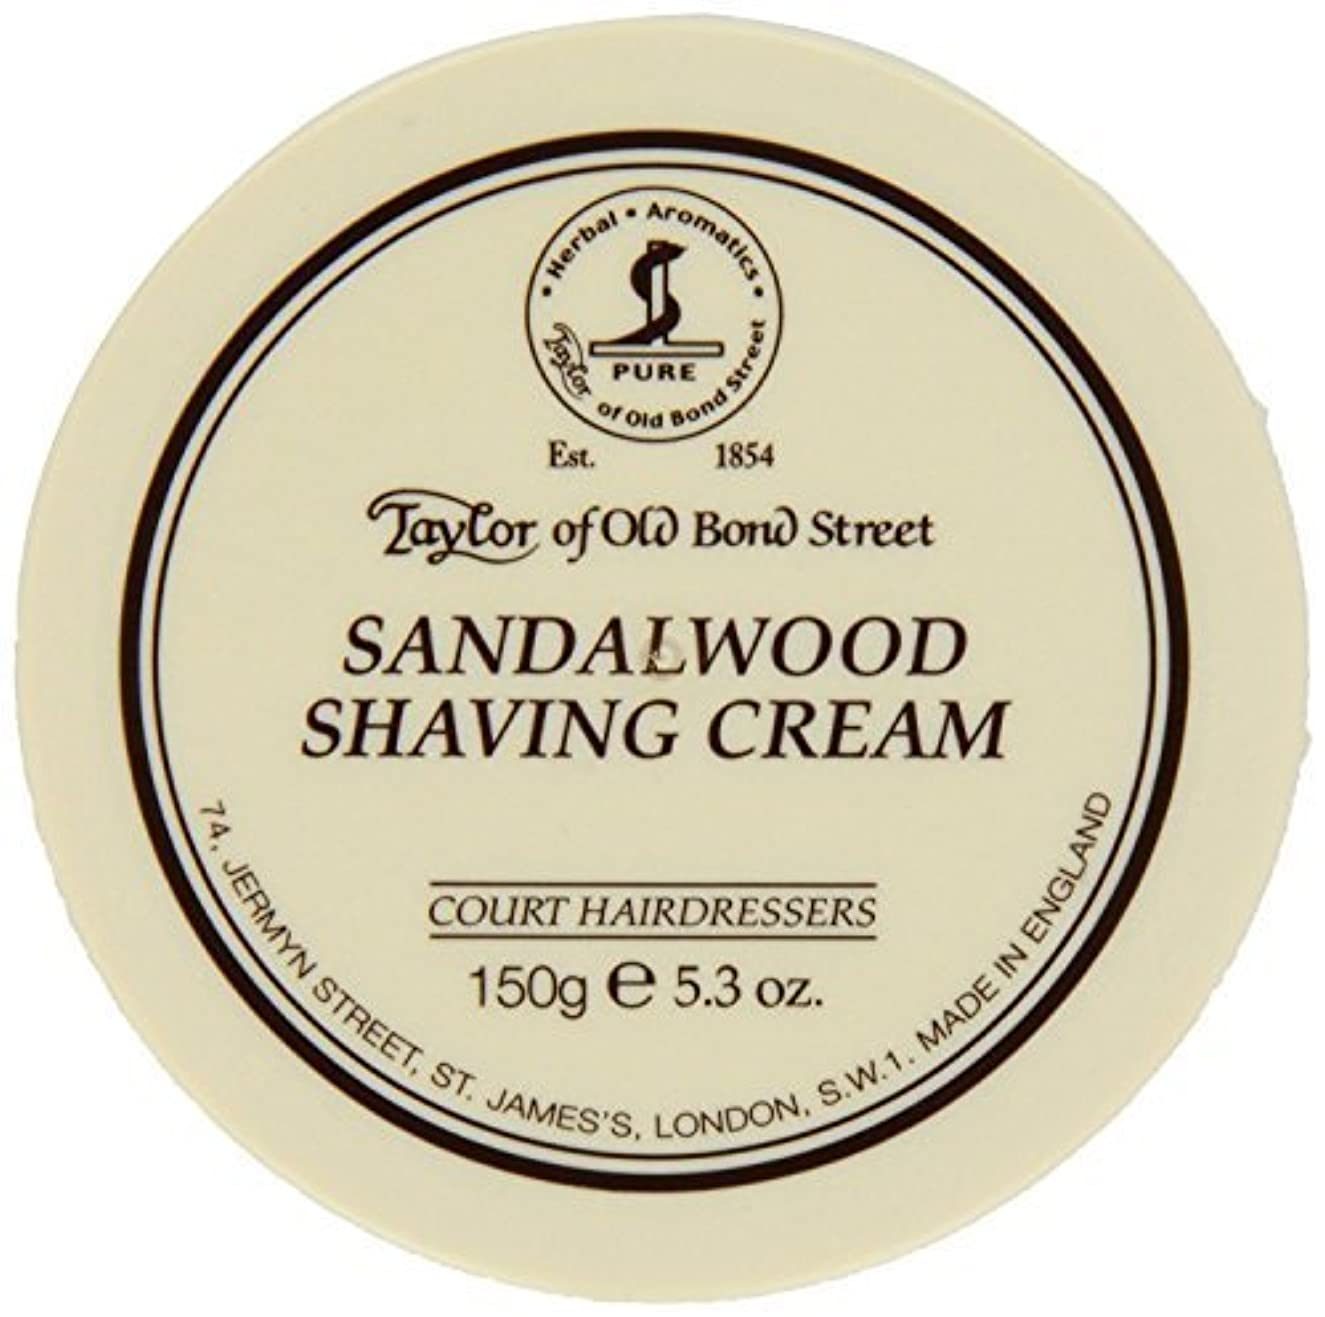 あからさま裏切り者画面Taylor of Old Bond Street SHAVING CREAM for SANDALWOOD 150g x 2 Bowls by Taylor of Old Bond Street [並行輸入品]